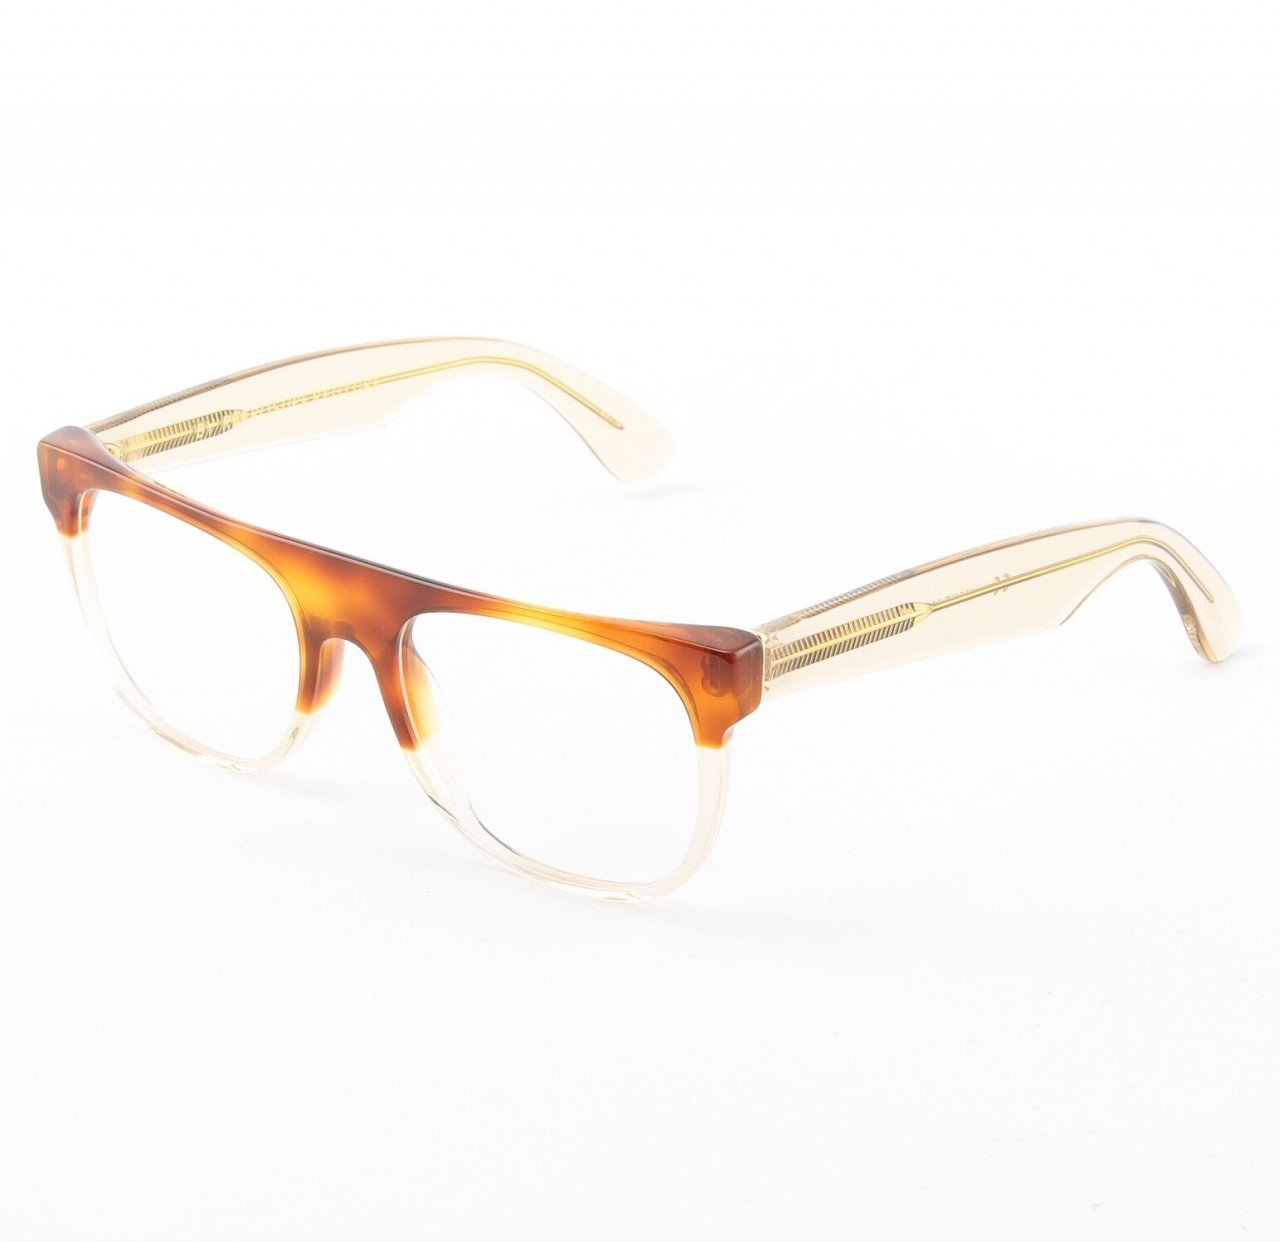 Super Flat Top 963/0T Eyeglasses Brown Havana Crystal with Brown Zeiss Lenses by RETROSUPERFUTURE